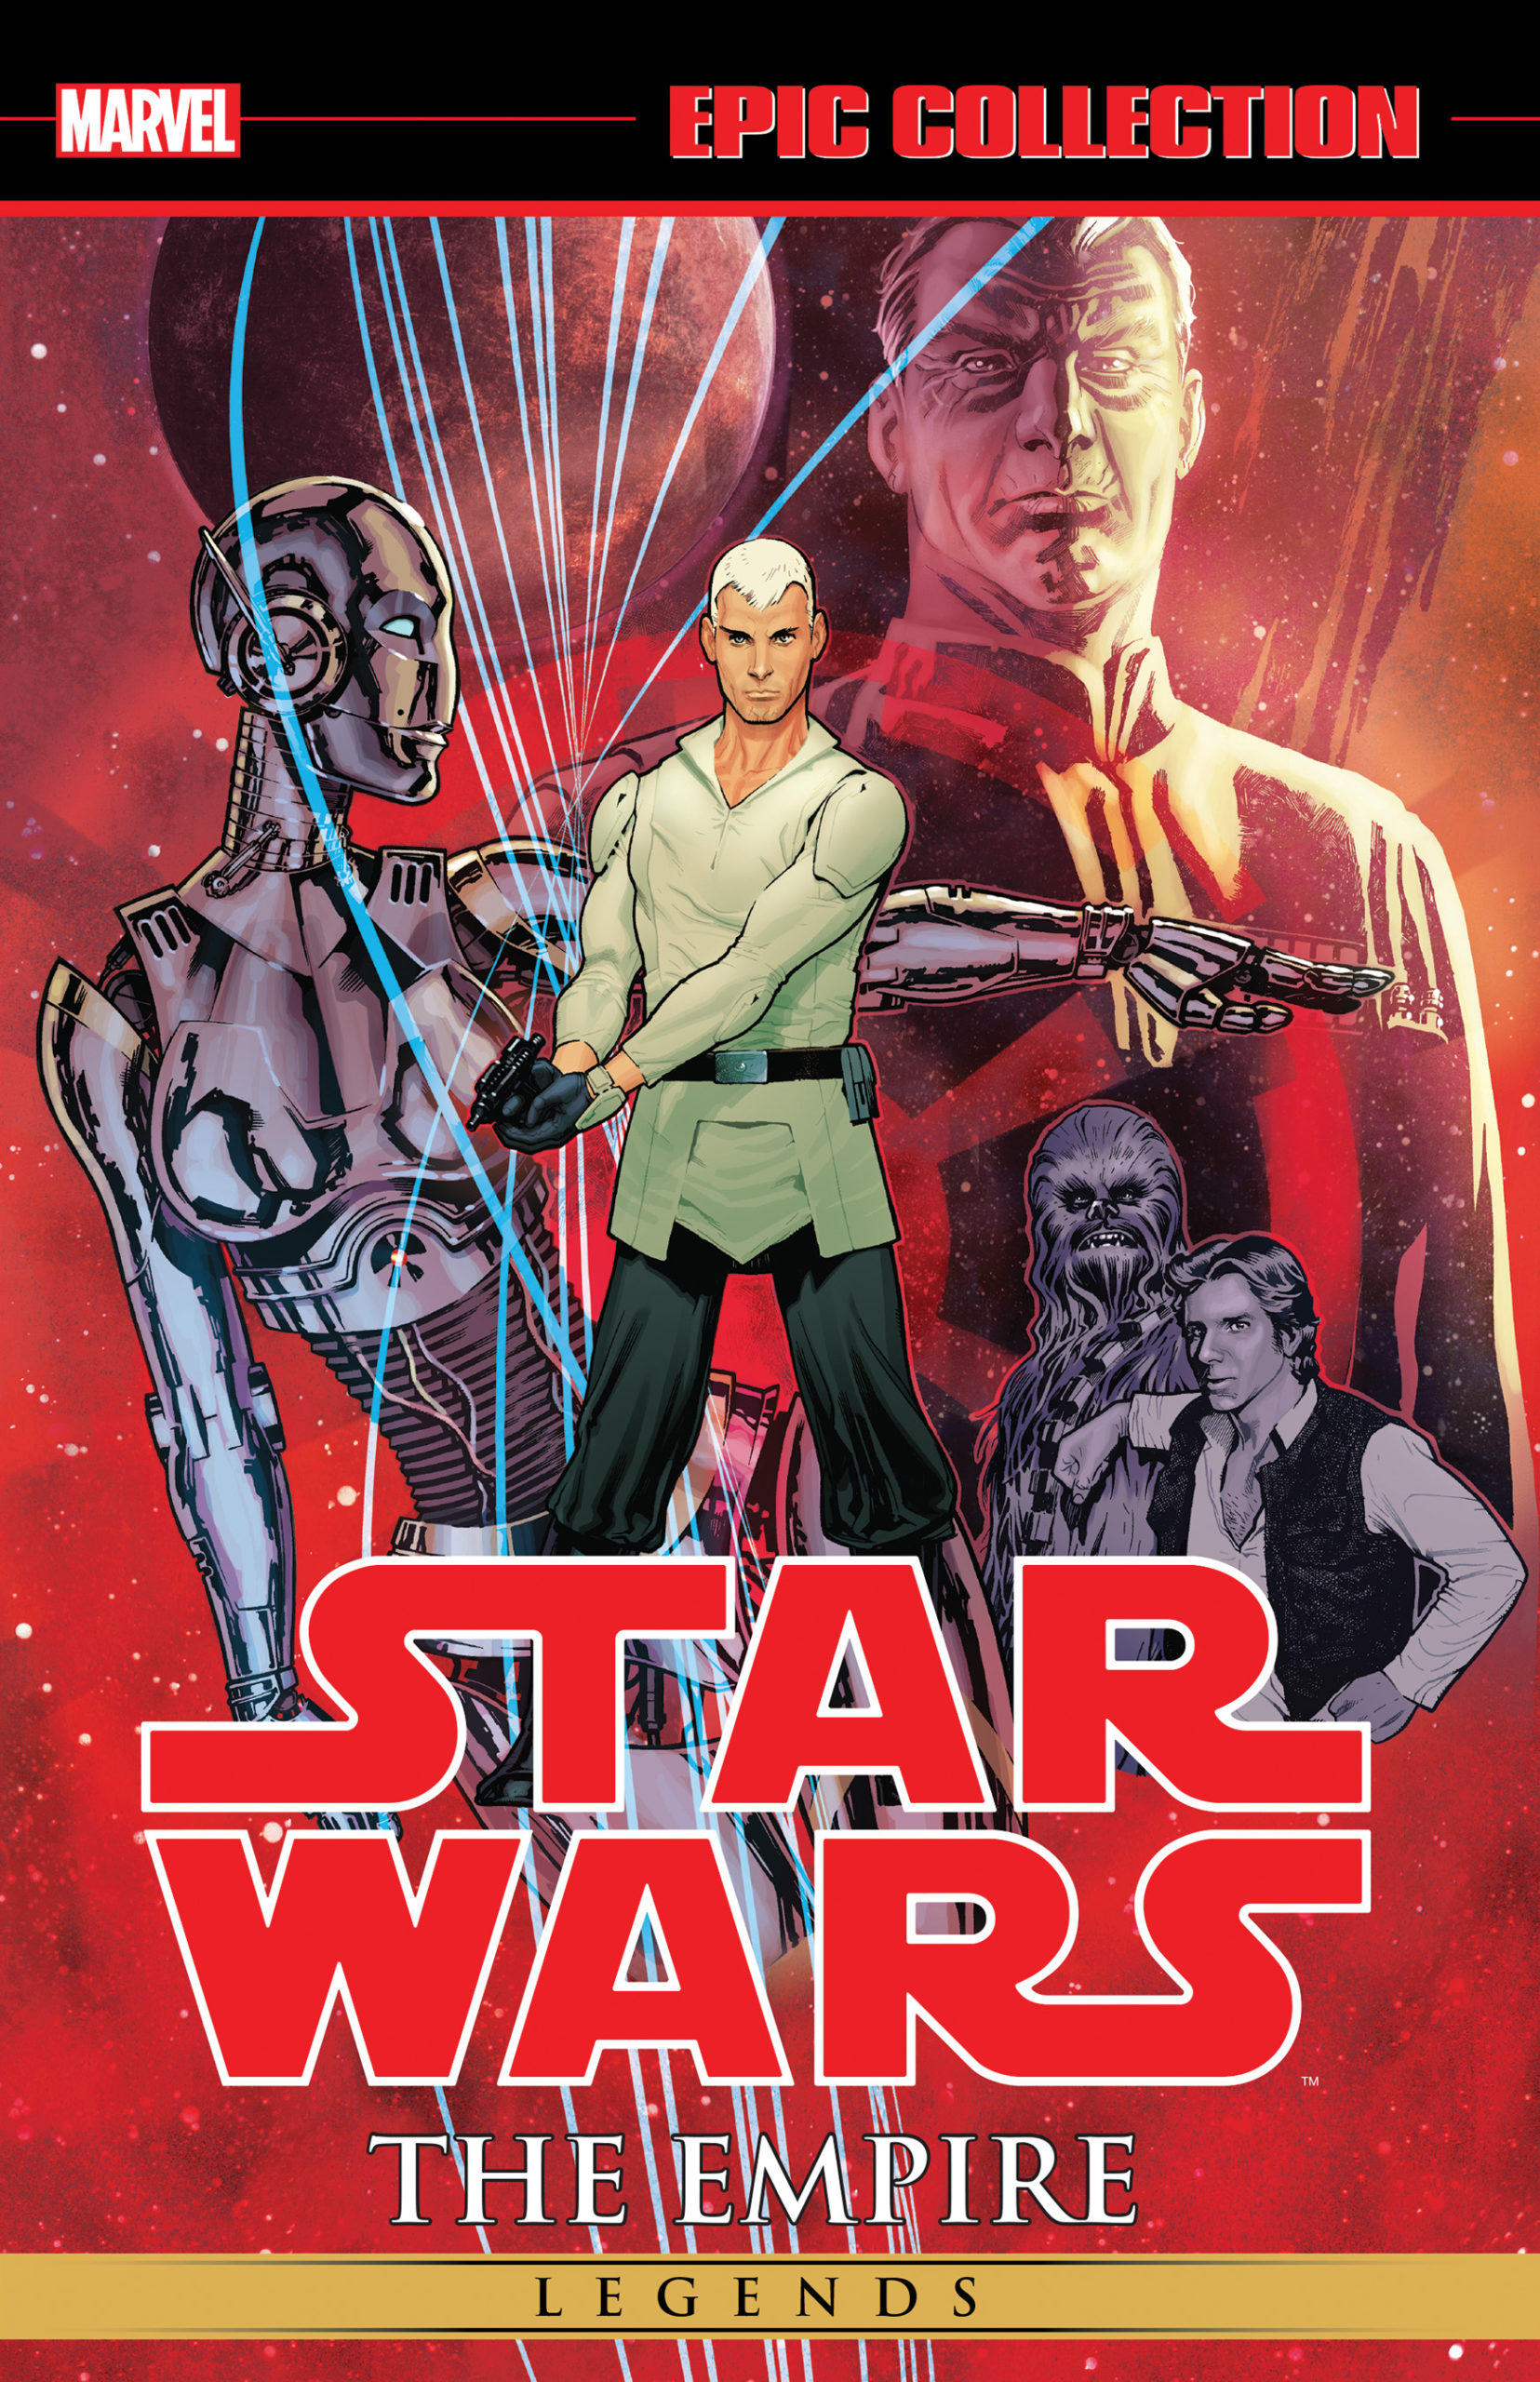 Star Wars Legends Epic Collection: The Empire Volume 6 (16.06.2020)